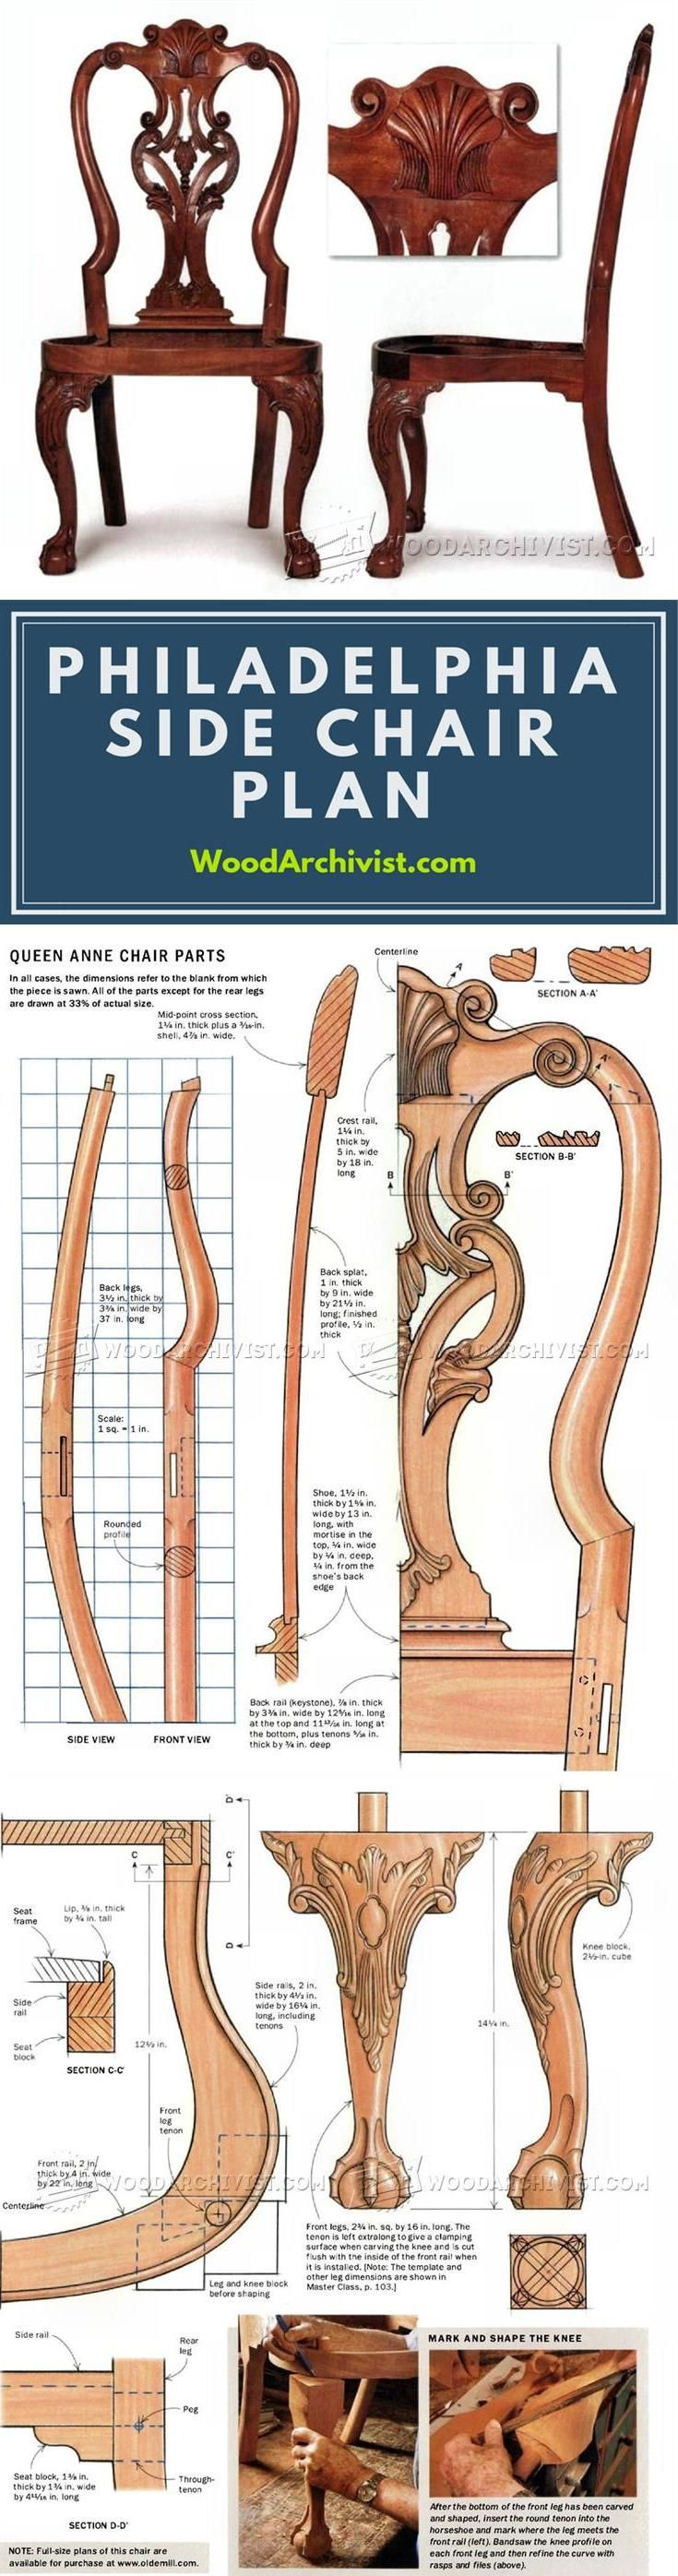 How to build a wingback chair my woodworking plans - Philadelphia Side Chair Plans Furniture Plans And Projects Woodwork Woodworking Woodworking Plans Woodworking Projects